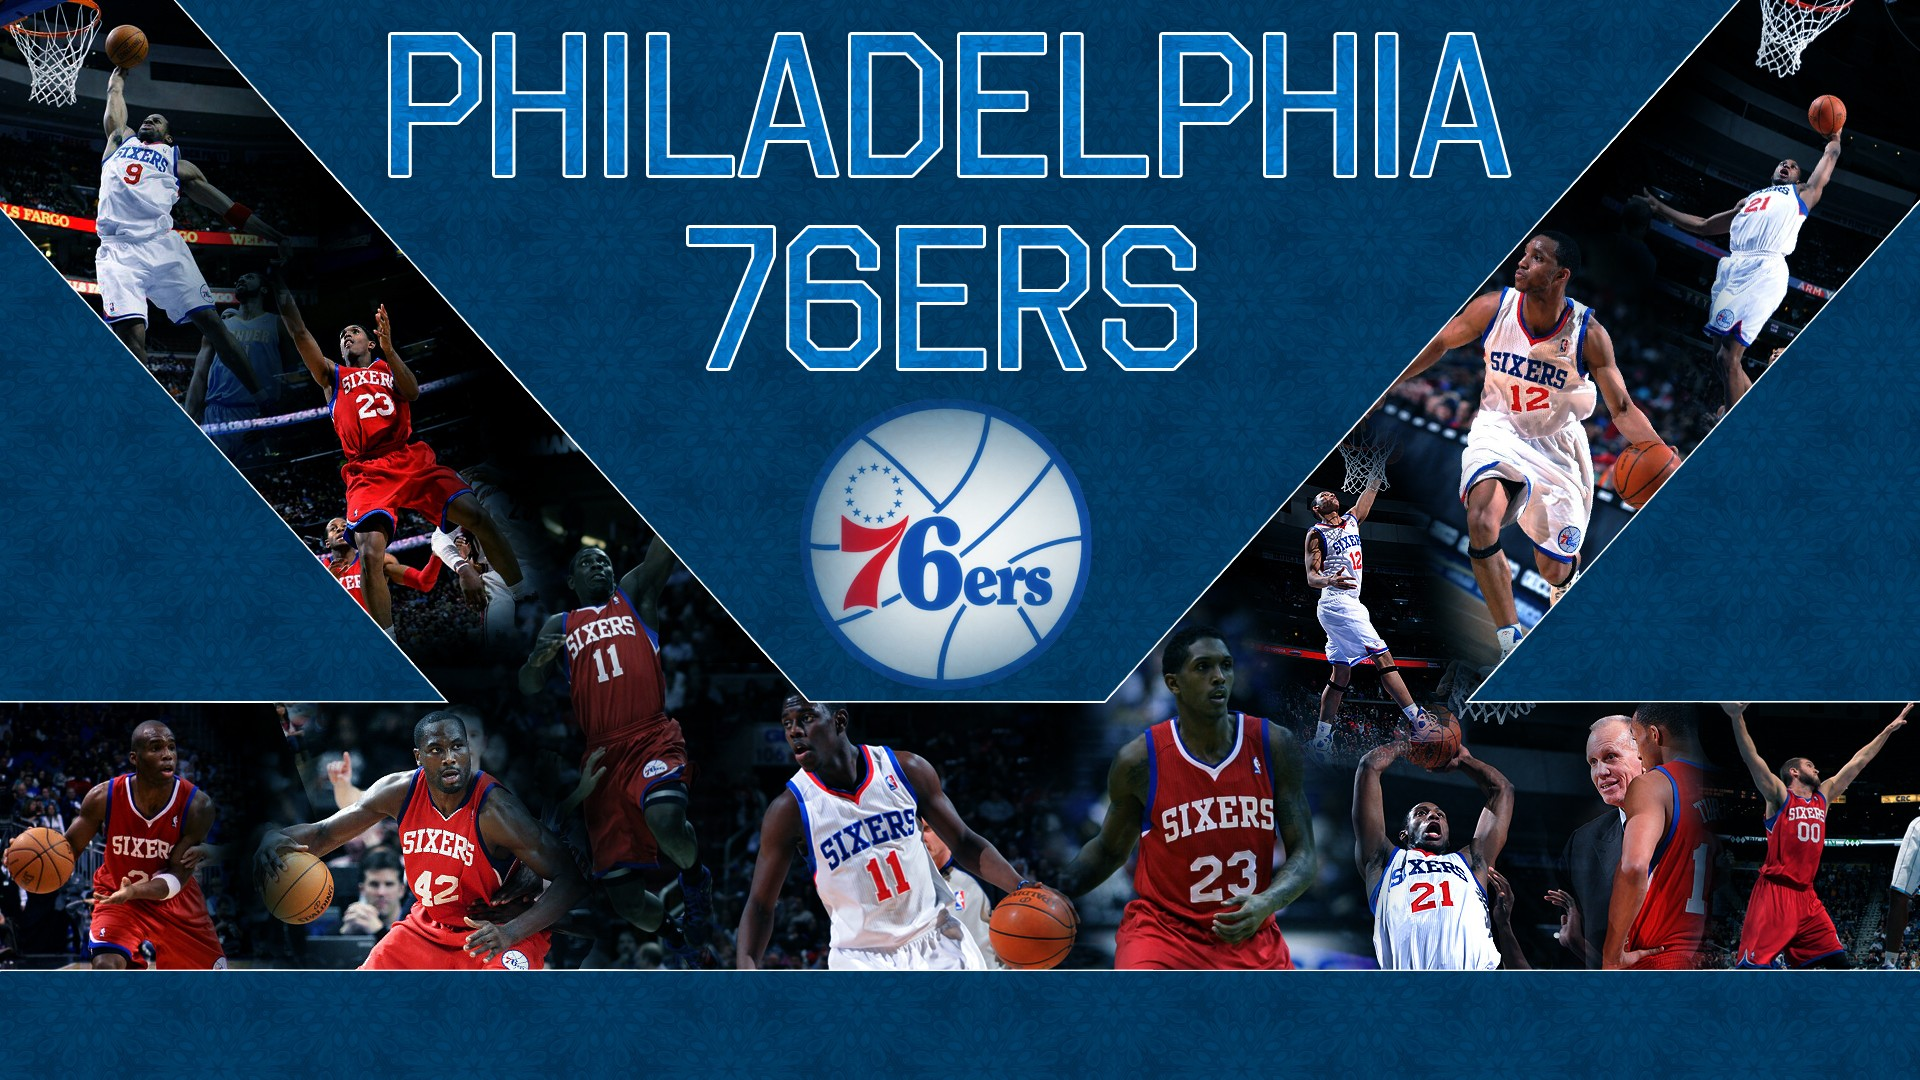 44 Philly Sports Wallpaper On Wallpapersafari